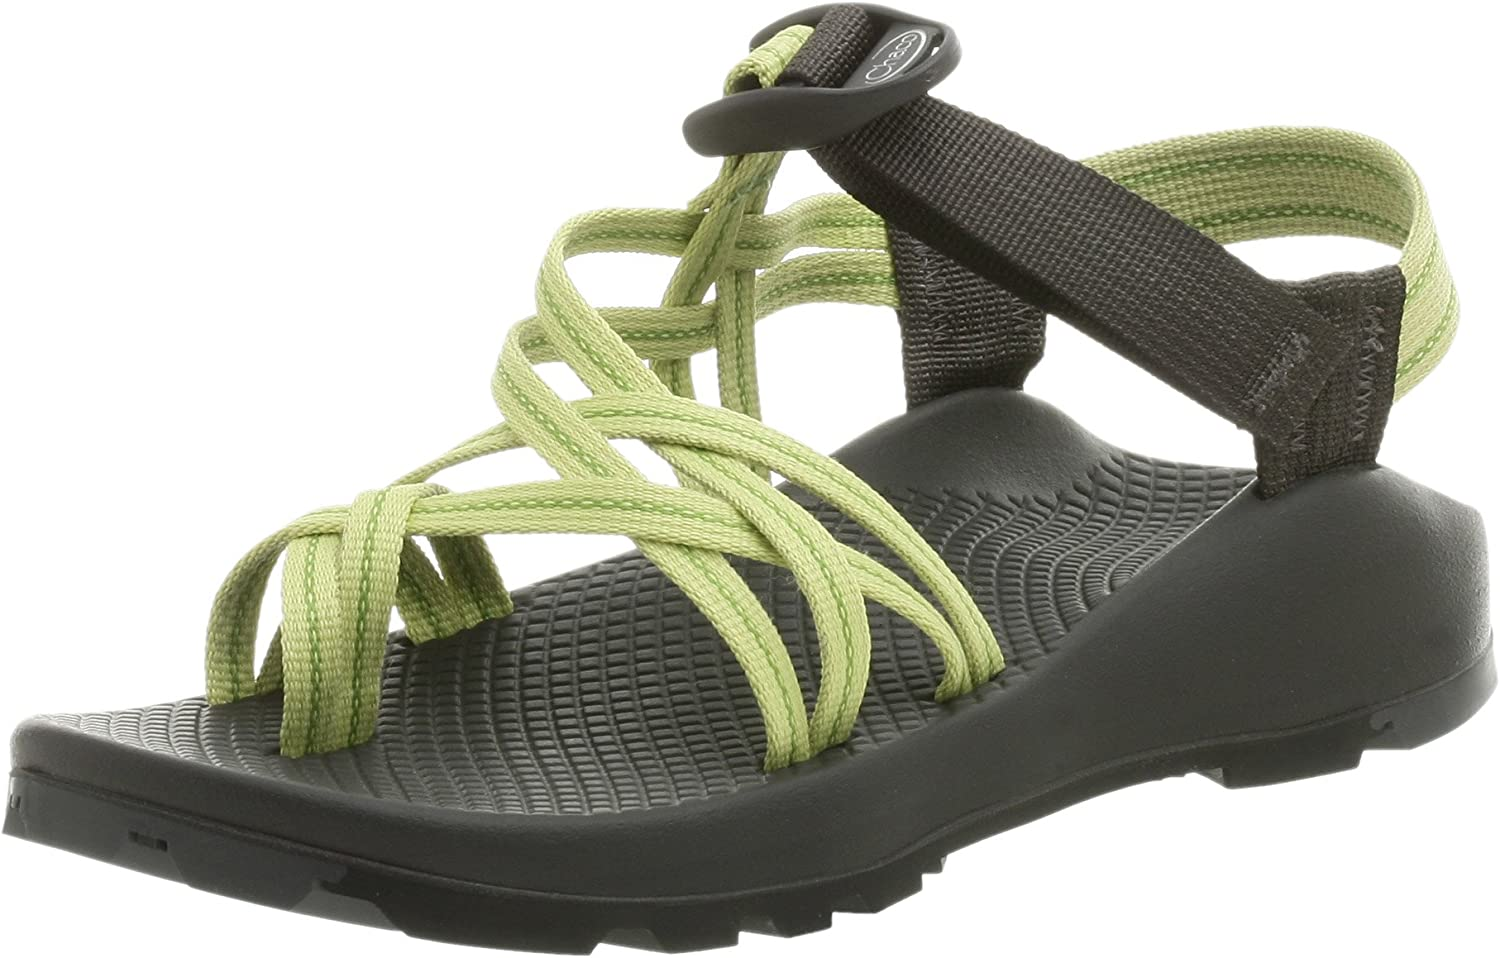 Surprise 70% OFF Outlet price Chaco Women's Sandal Zvolv